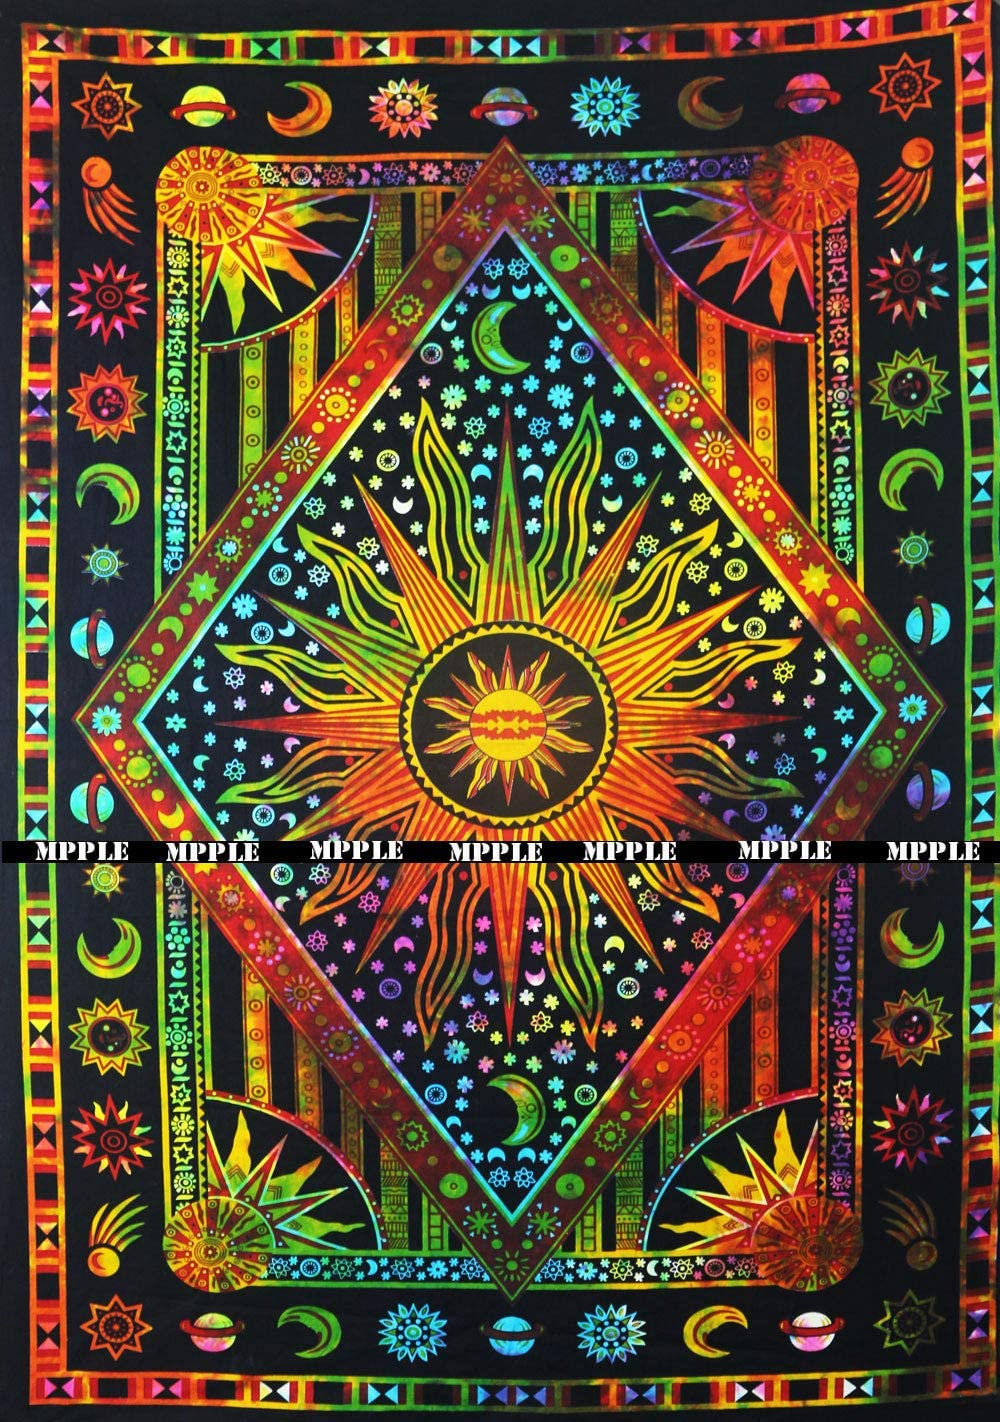 Tie Dye Psychedelic Celestial Sun Moon tapestry Bohemian Tapestry Wall Hanging Dorm Decor Boho Tapestry /Hippie Hippy Tapestry Beach Coverlet Curtain (Twin (54 X 84 inches approx, Orange Multi Color)